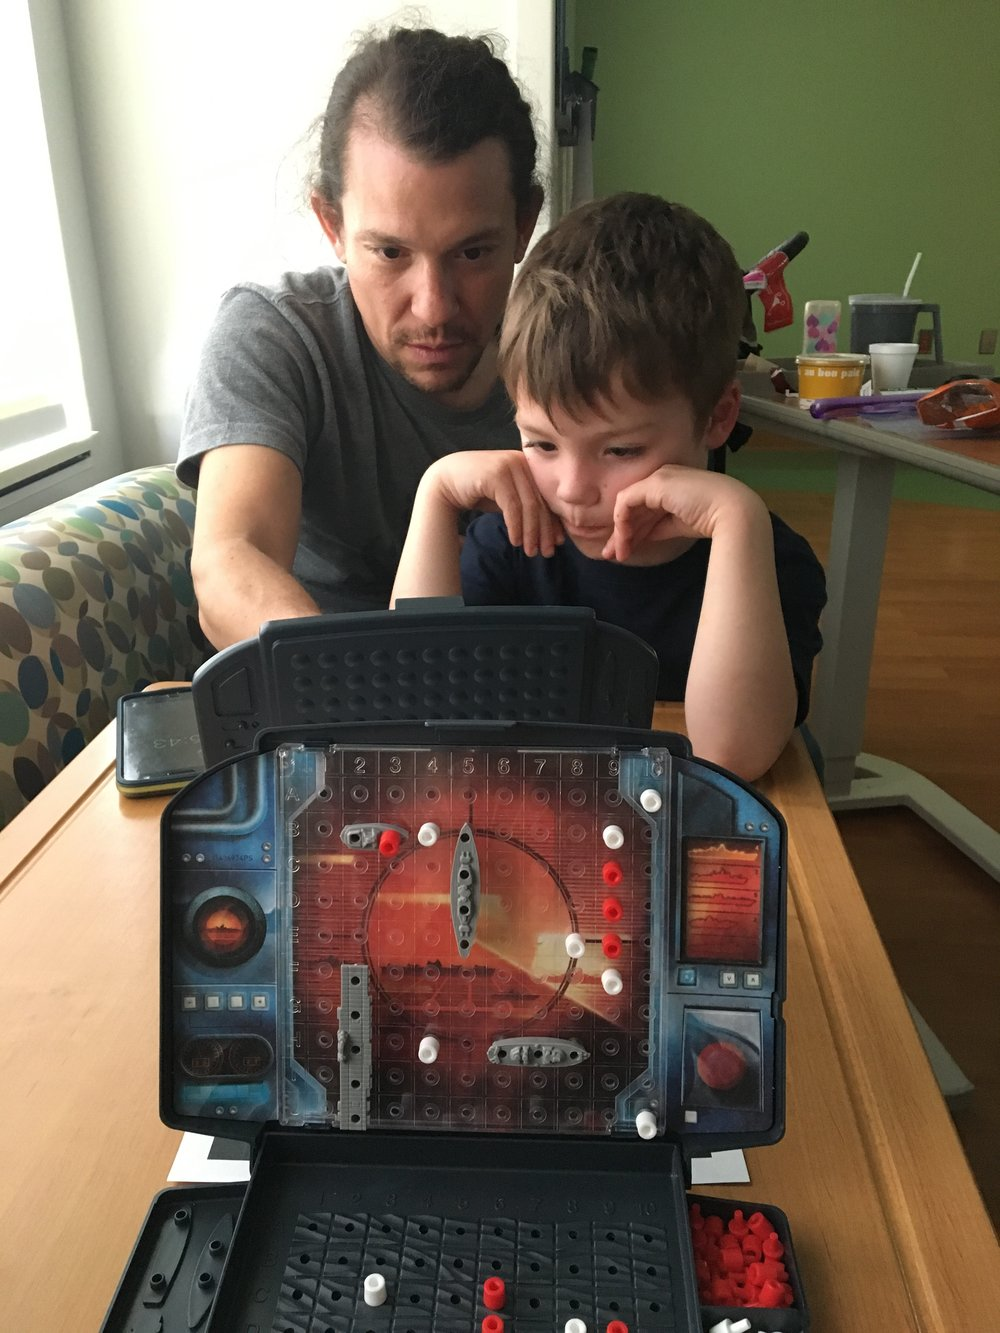 Getting our battleship on with Daddy during an inpatient stay